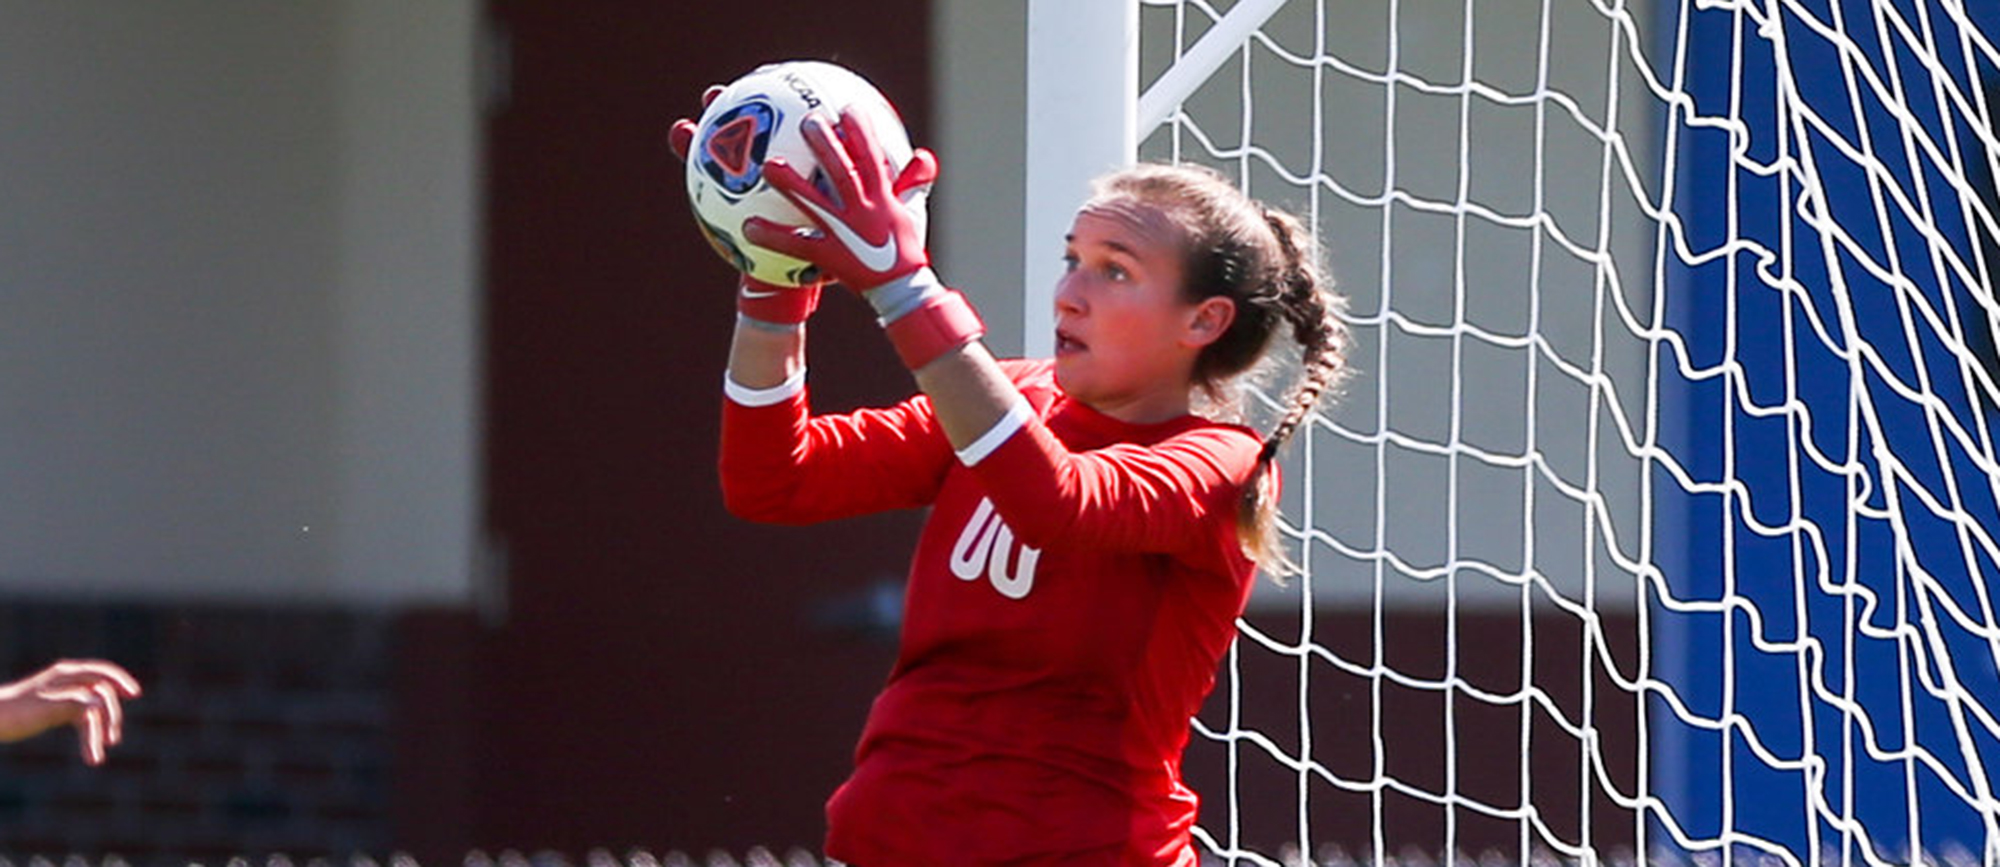 Alex Lemekha posted her 14th career shutout on Saturday as the Golden Bears tied Wentworth 0-0. (Photo by Chris Marion)